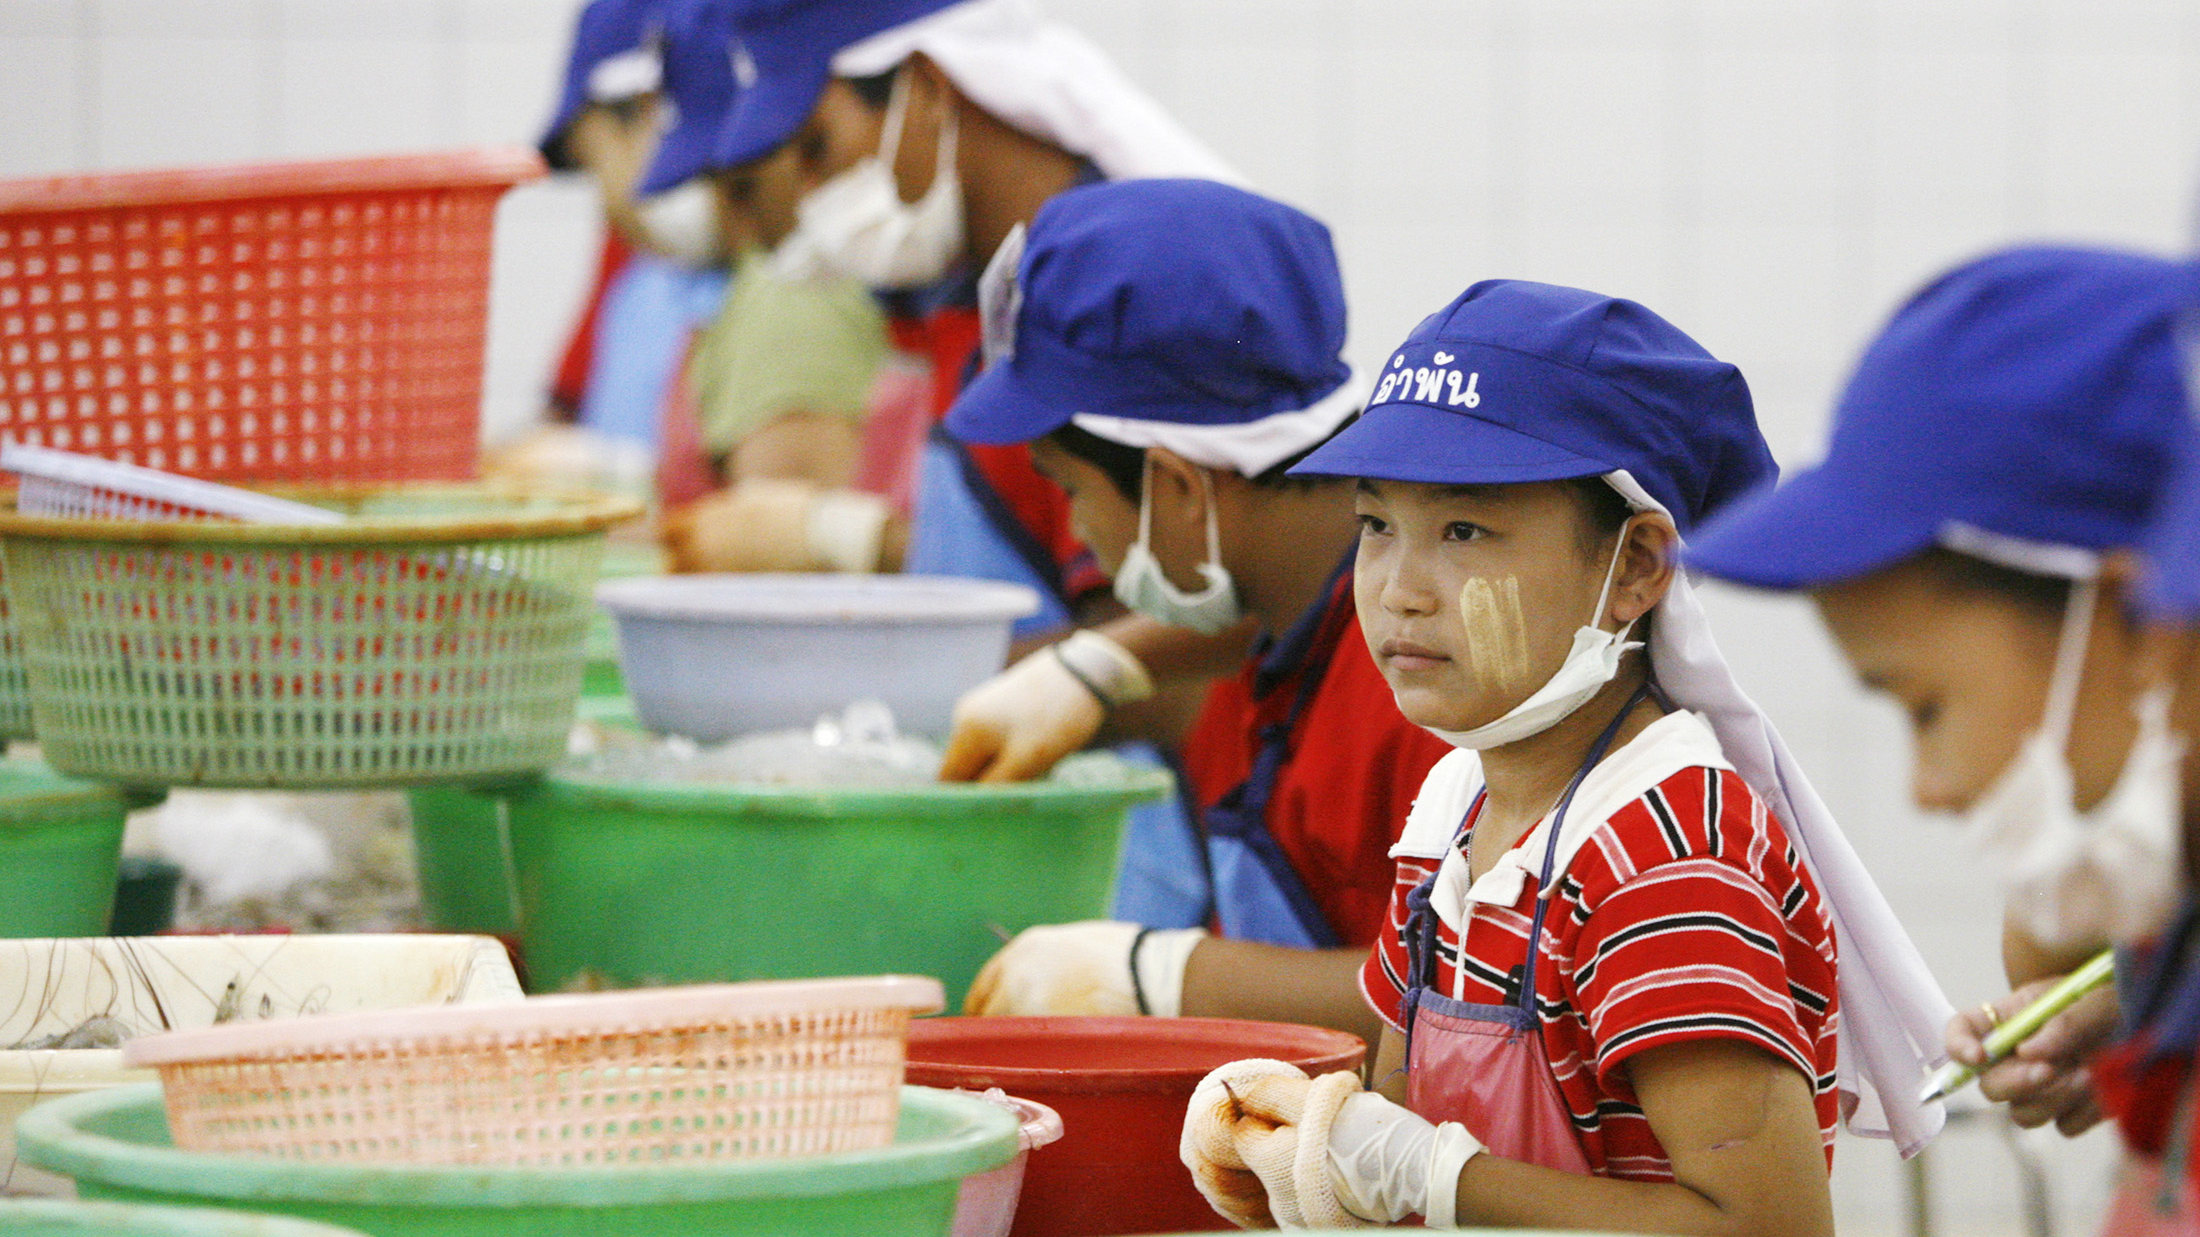 Tae (C), a 13-year-old girl from military-ruled Myanmar, peels shrimp at a factory in Samut Sakhon, nearly 40 km (25 miles) south of Bangkok April 20, 2007. The Labour Rights Promotion Network (LPN), a non-governmental organisation, estimates there are 200,000 Myanmar migrant workers in Samut Sakhon -- of whom only 70,000 are registered legally. To match feature THAILAND-CHILDLABOUR/ REUTERS/Adrees Latif